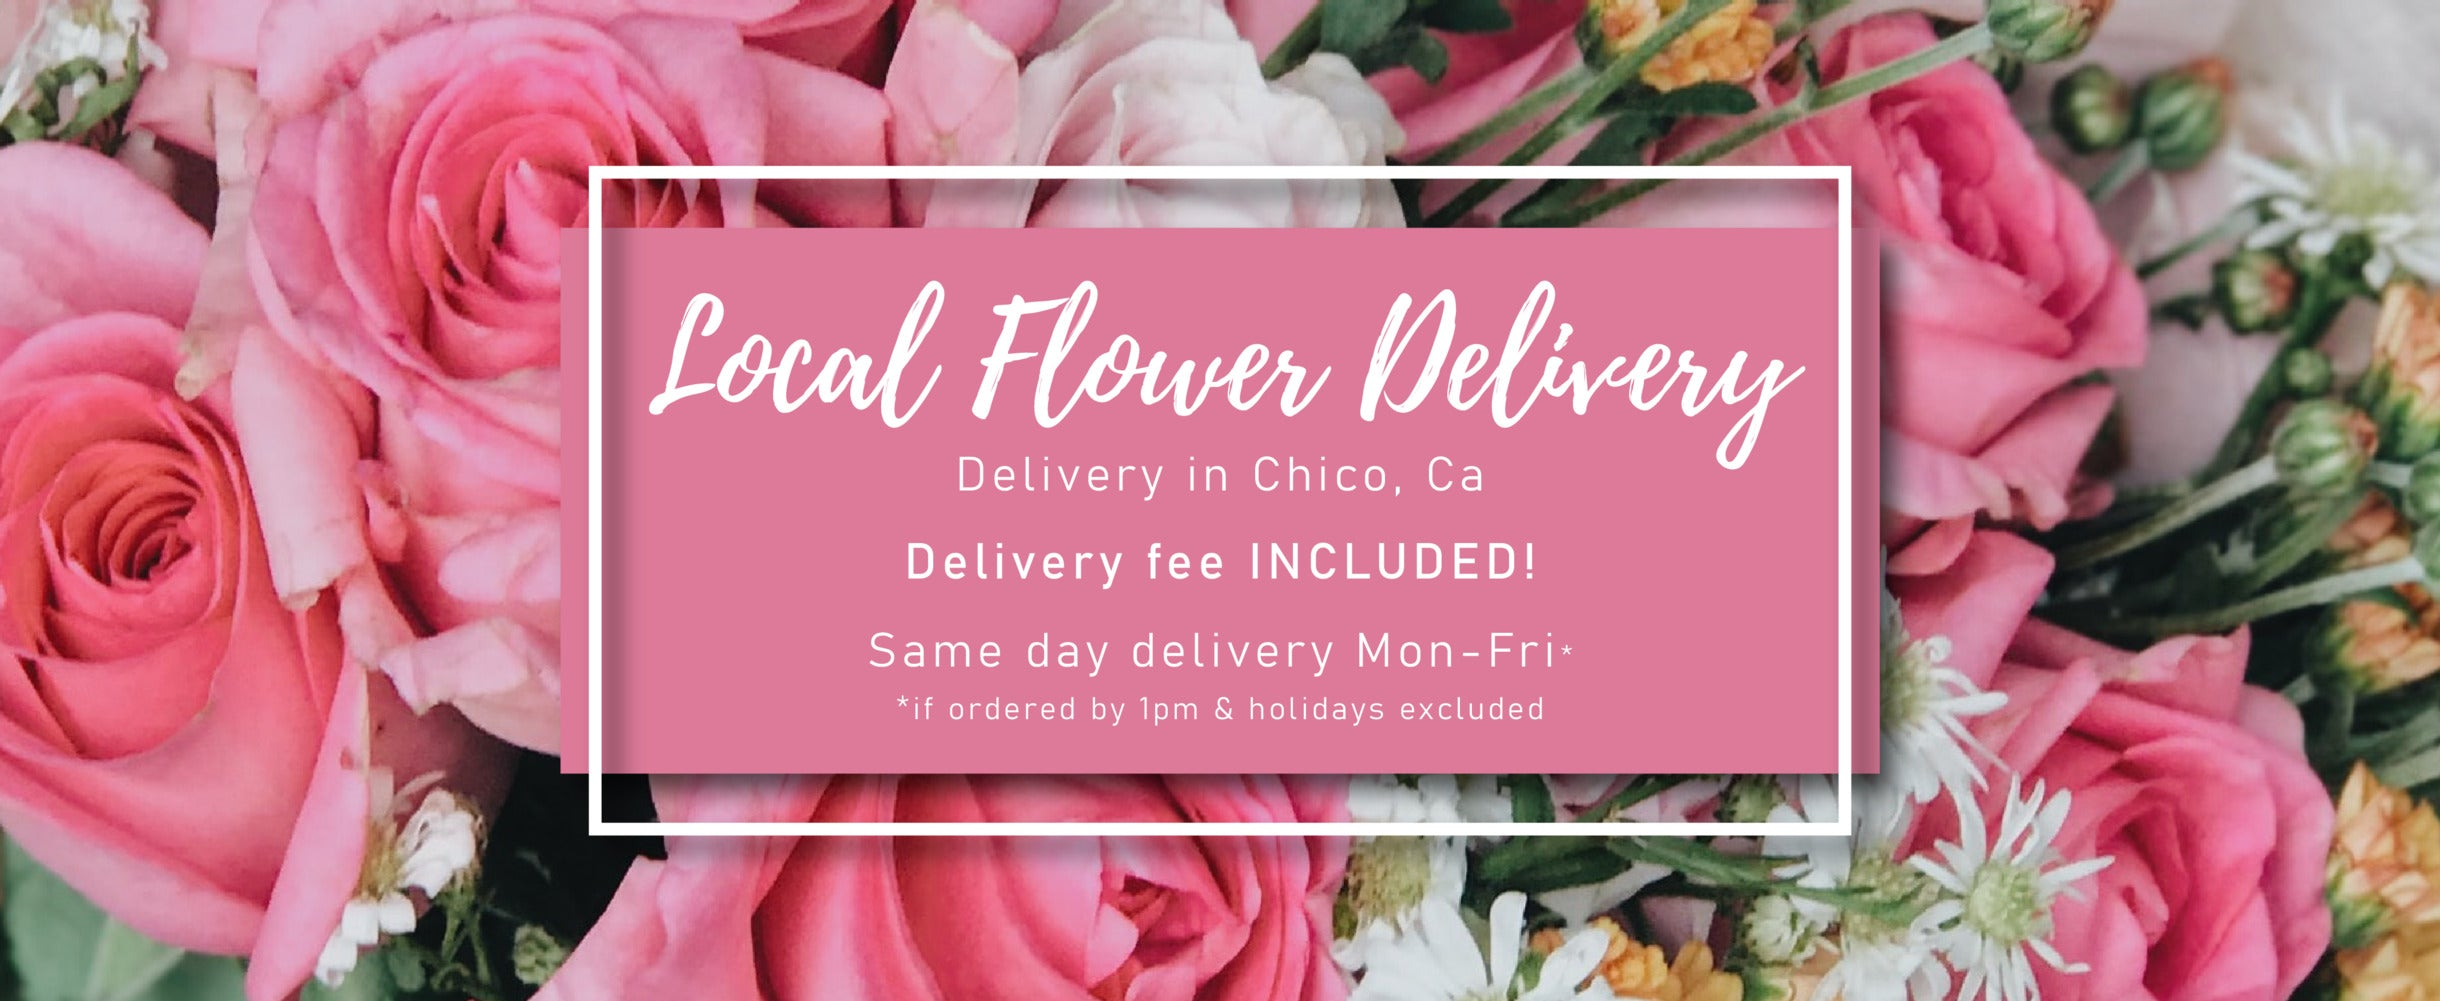 Local flower delivery. Delivery fee included. Same day if ordered Mon-Fri by 1pm. Holidays excluded.